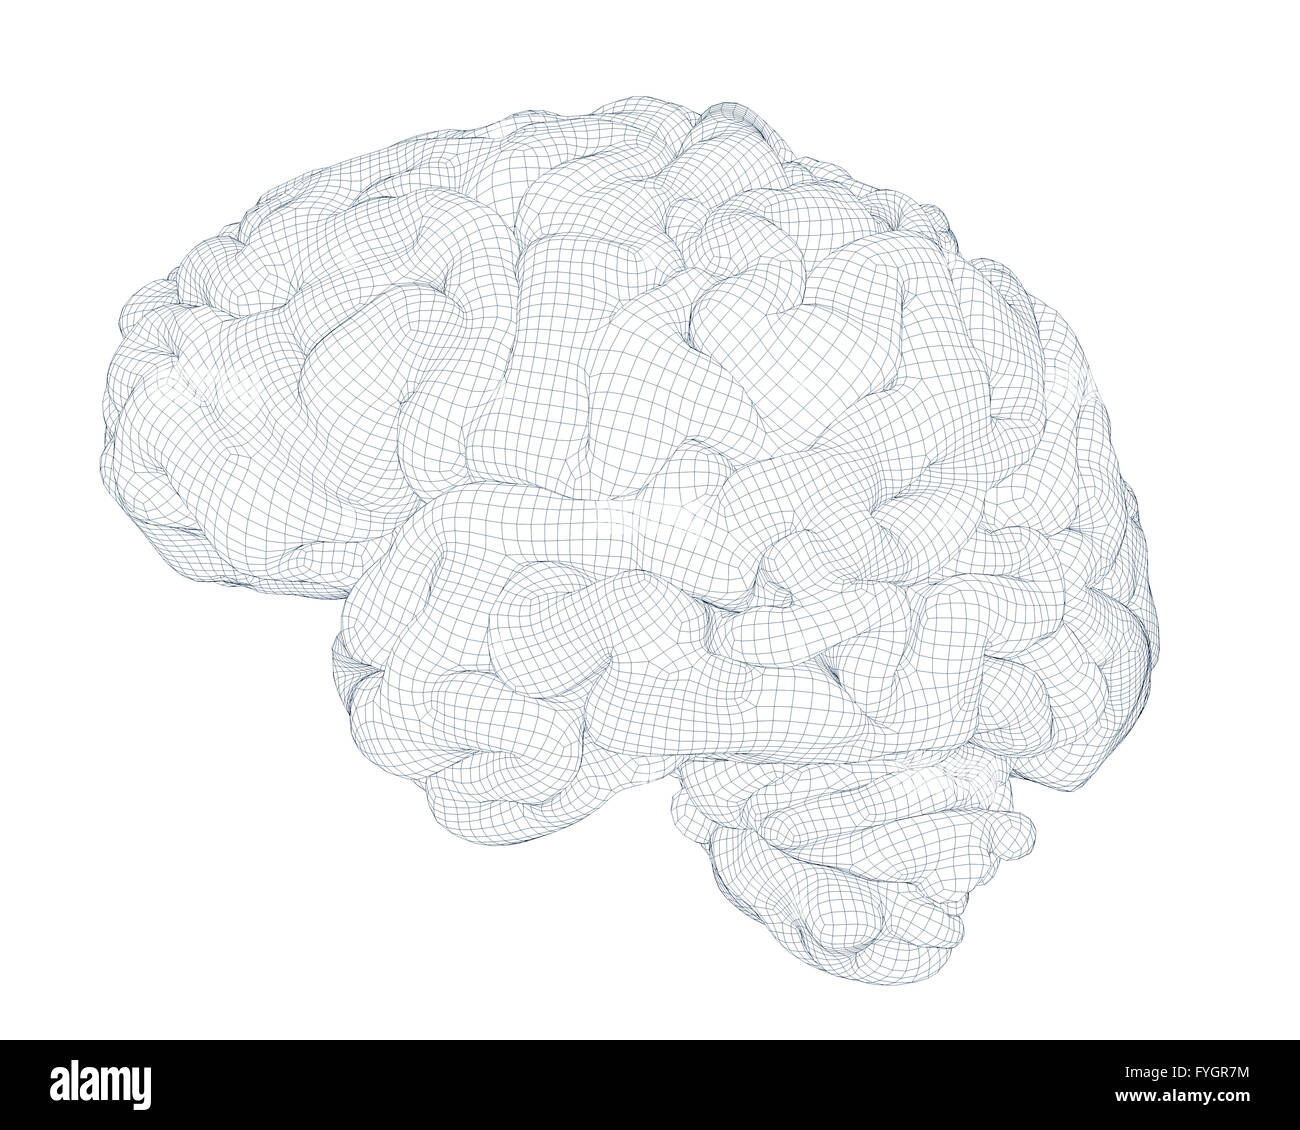 brain isolated wireframe 3d generated - Stock Image